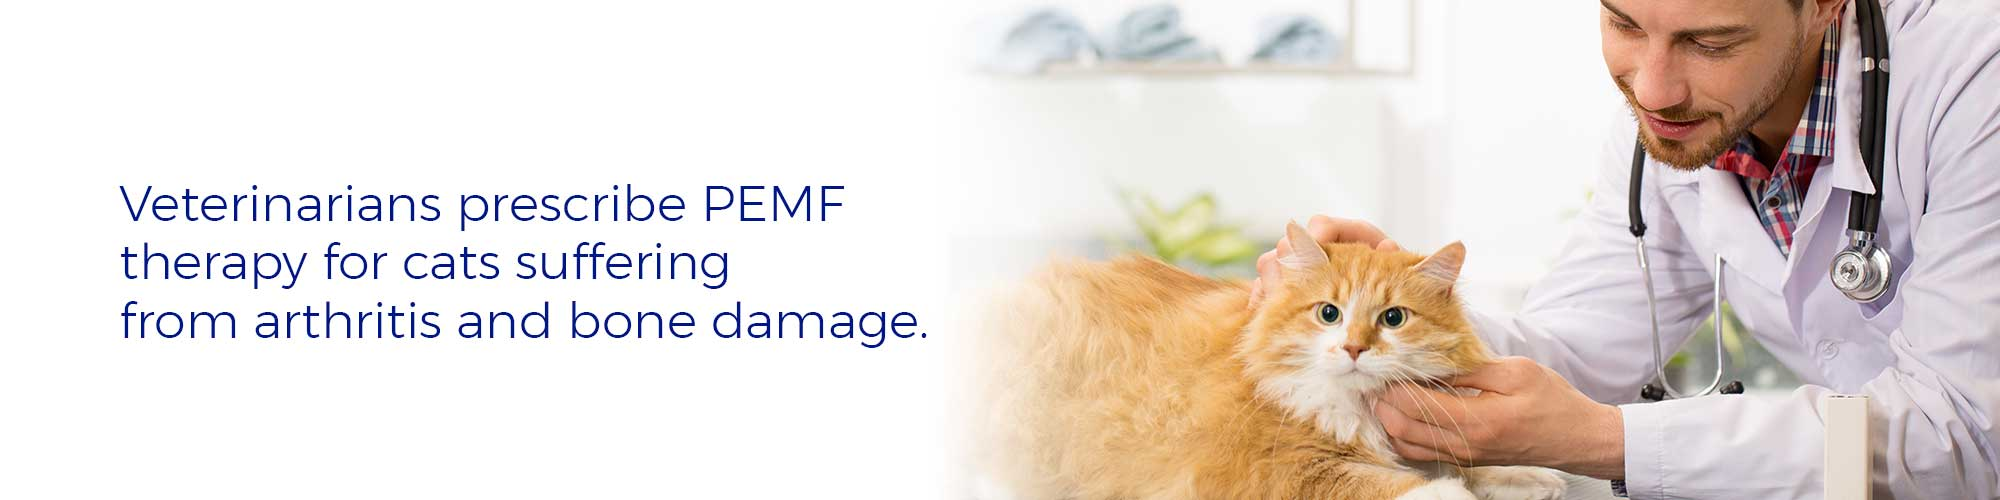 Veterinarians prescribe PEMF therapy for cats suffering from arthritis and bone damage.